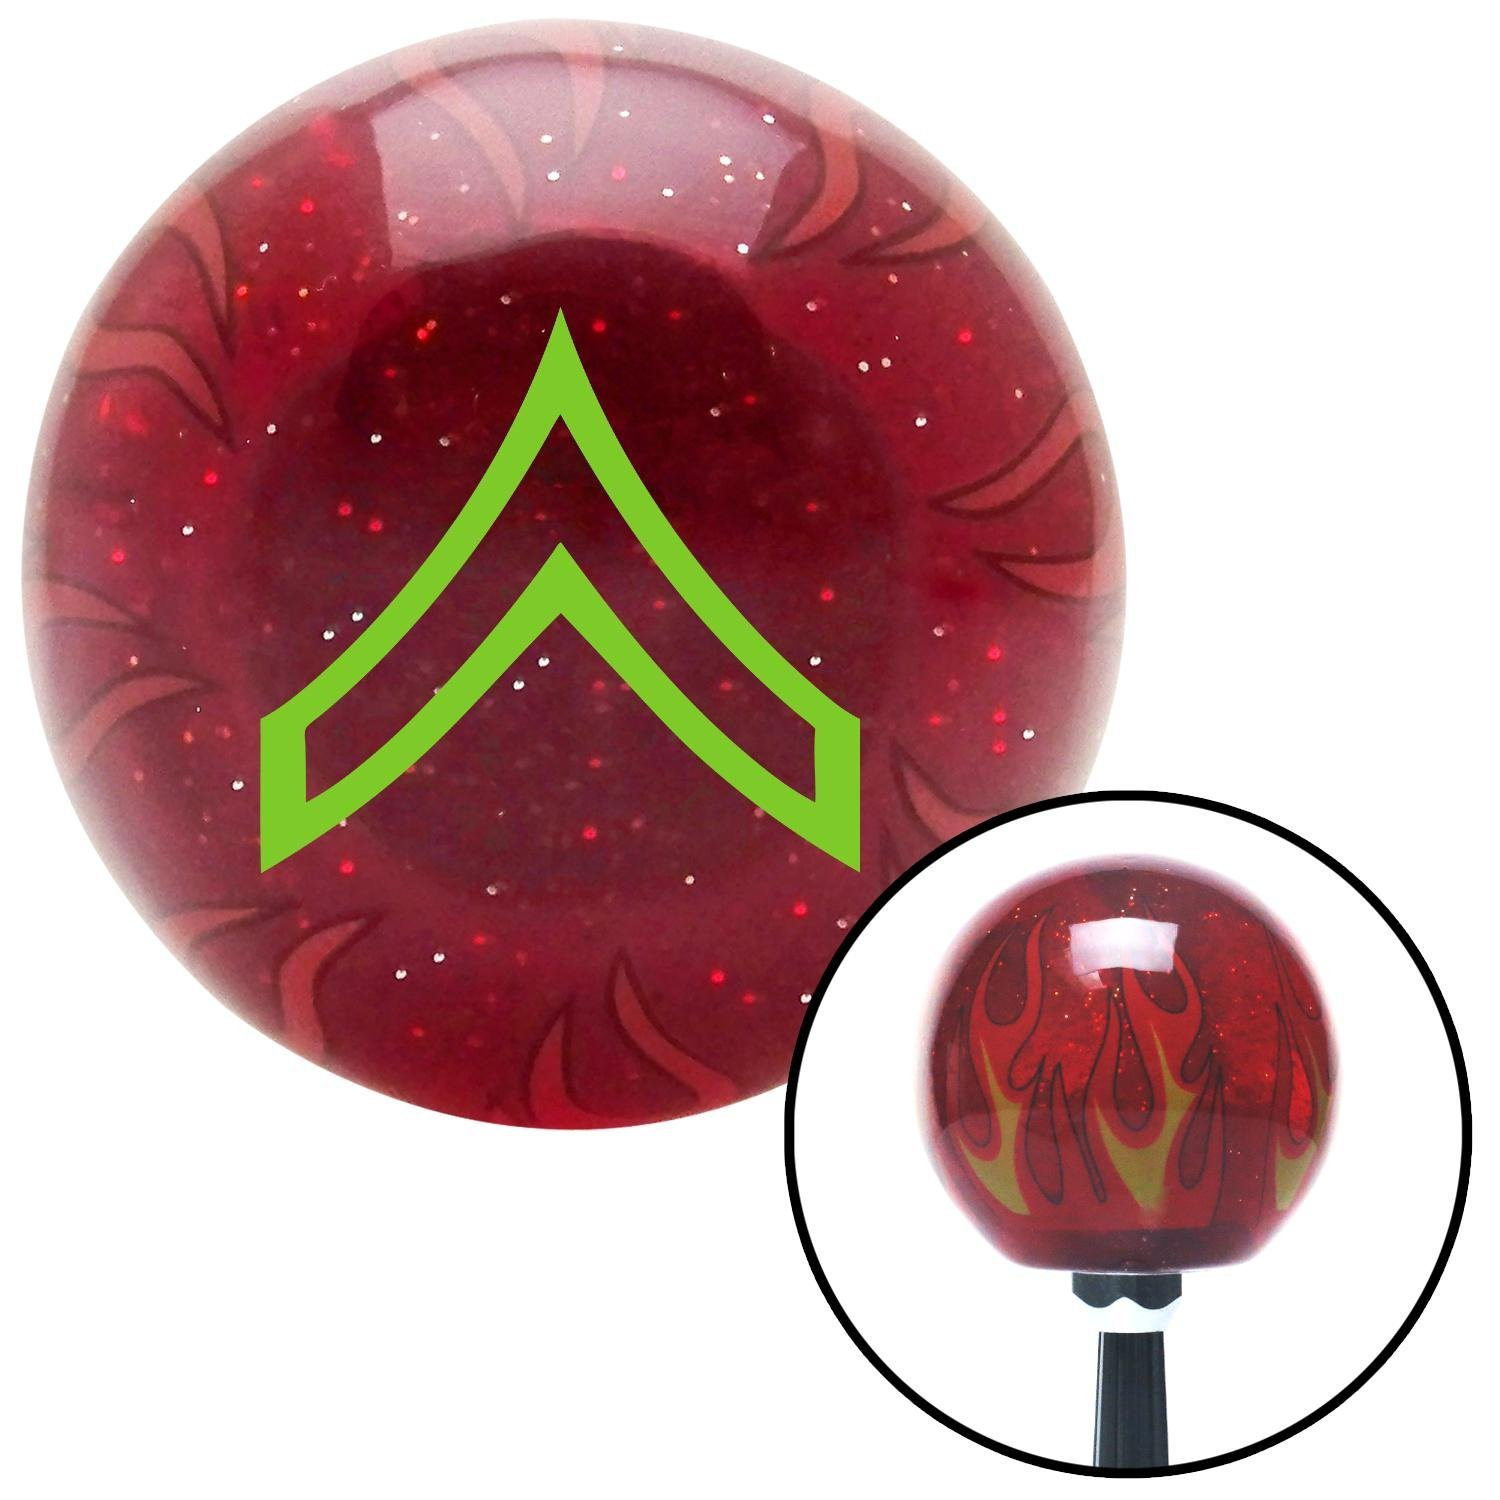 American Shifter 241327 Red Flame Metal Flake Shift Knob with M16 x 1.5 Insert Green Private